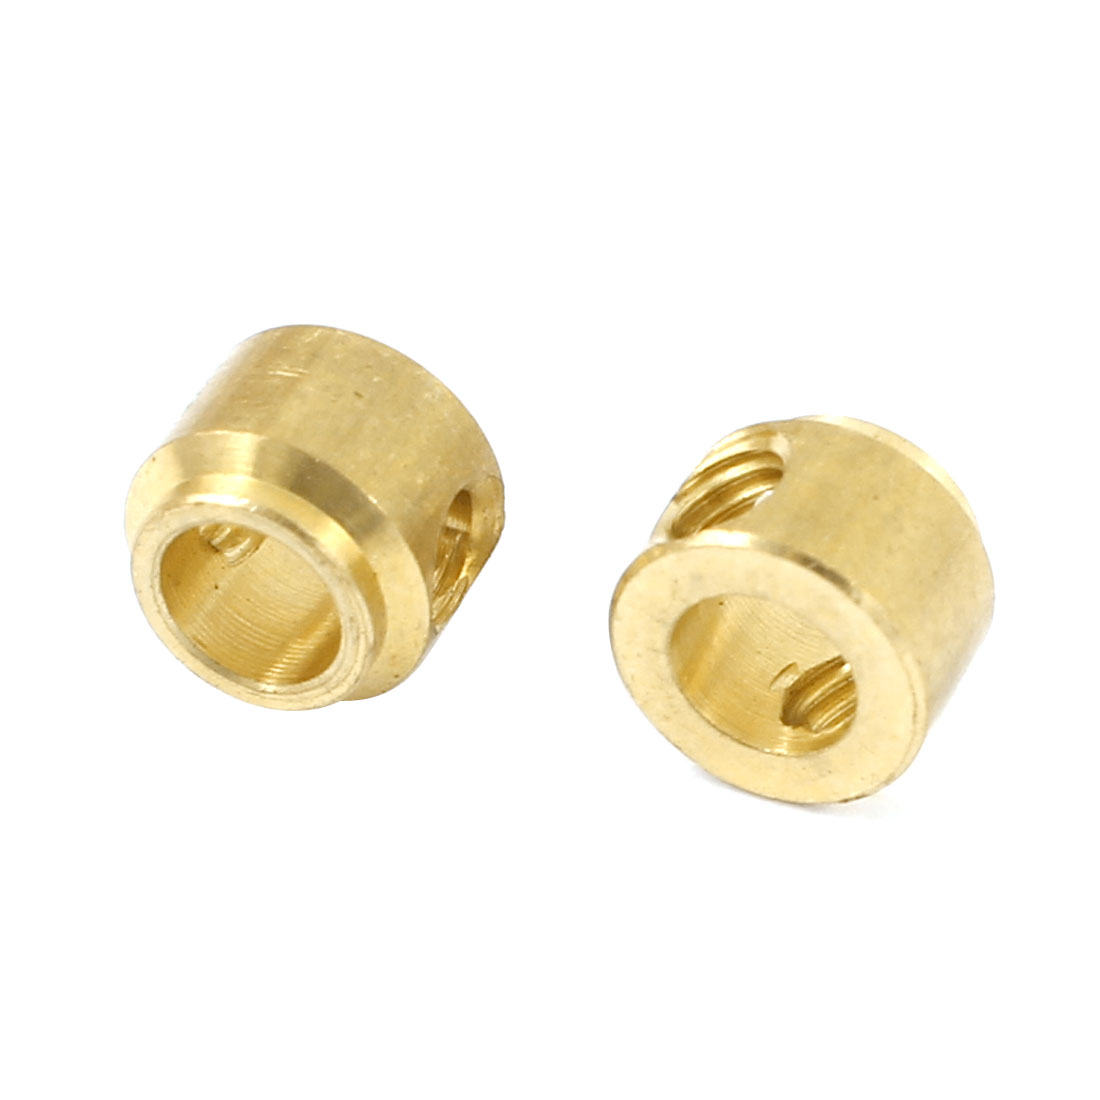 2 Pcs Gold Tone Brass Cylinder Shaped RC Aeroplane DIY Model Block Parts